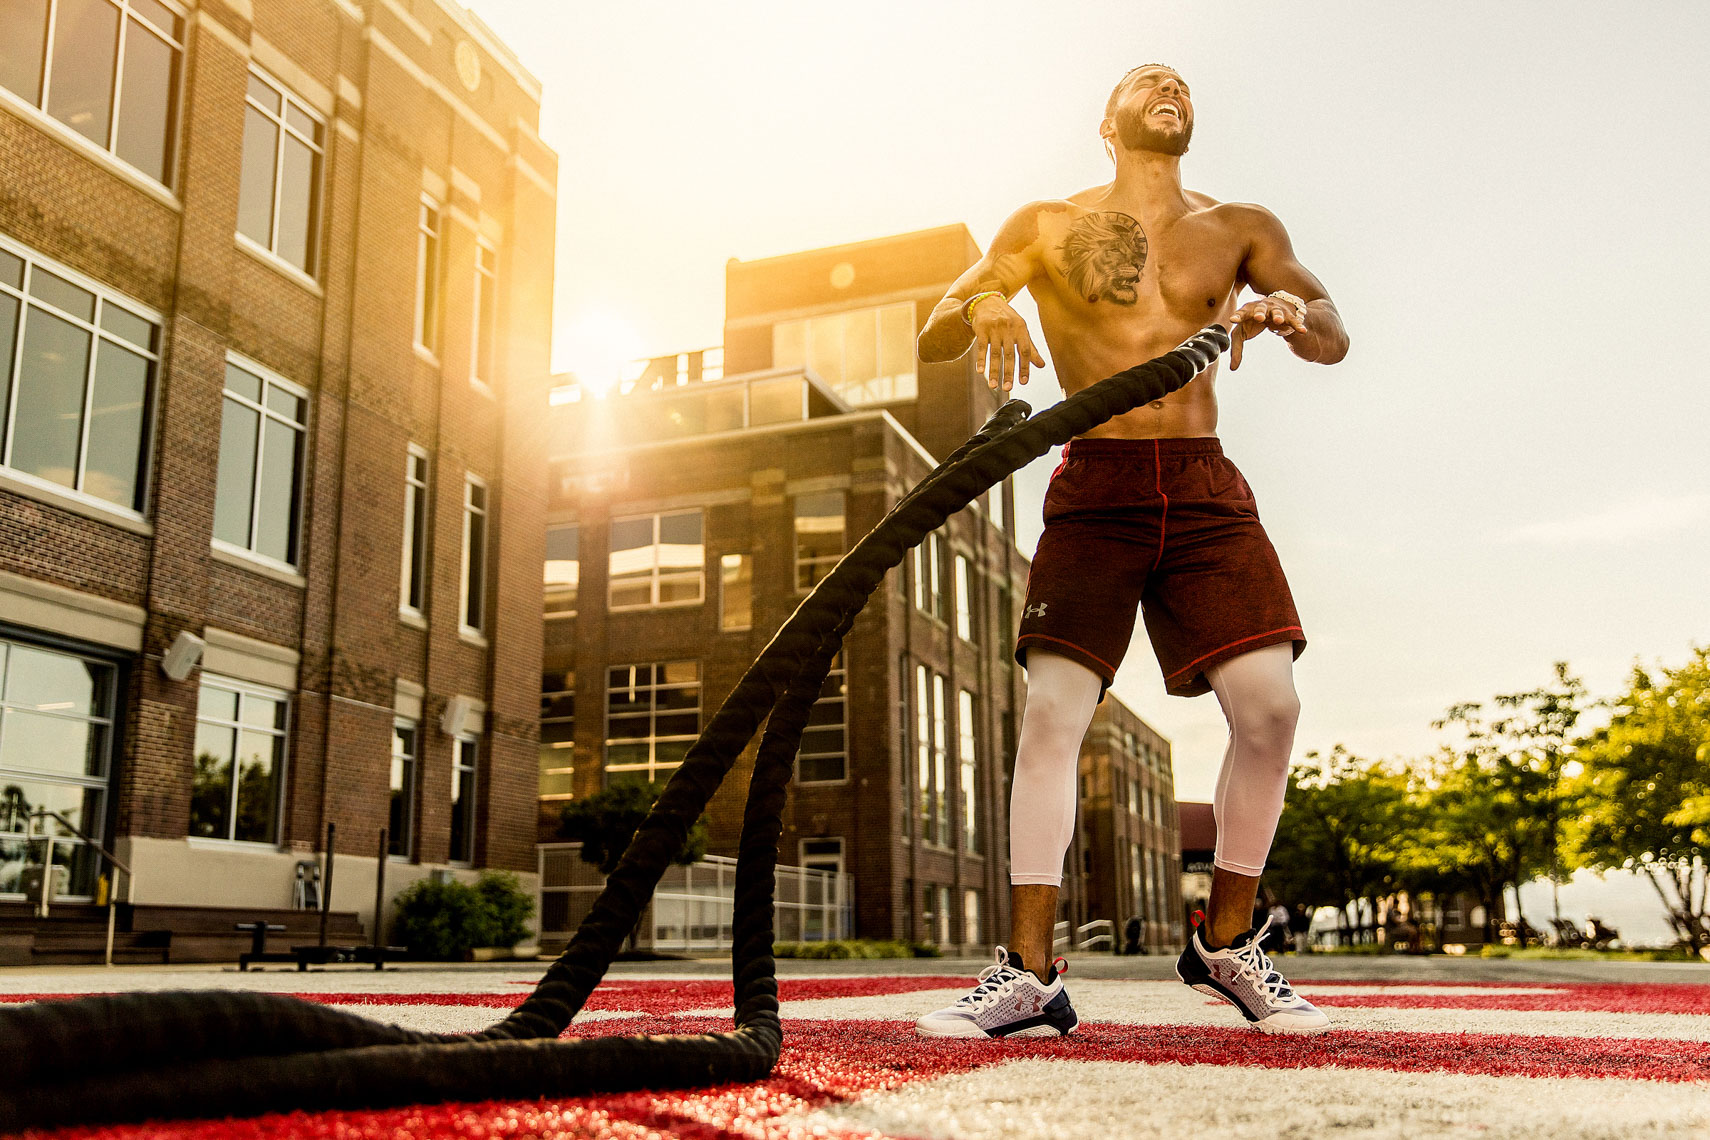 Fitness athlete training workout styled in Under Armour by advertising fitness active lifestyle photographer in Baltimore Maryland